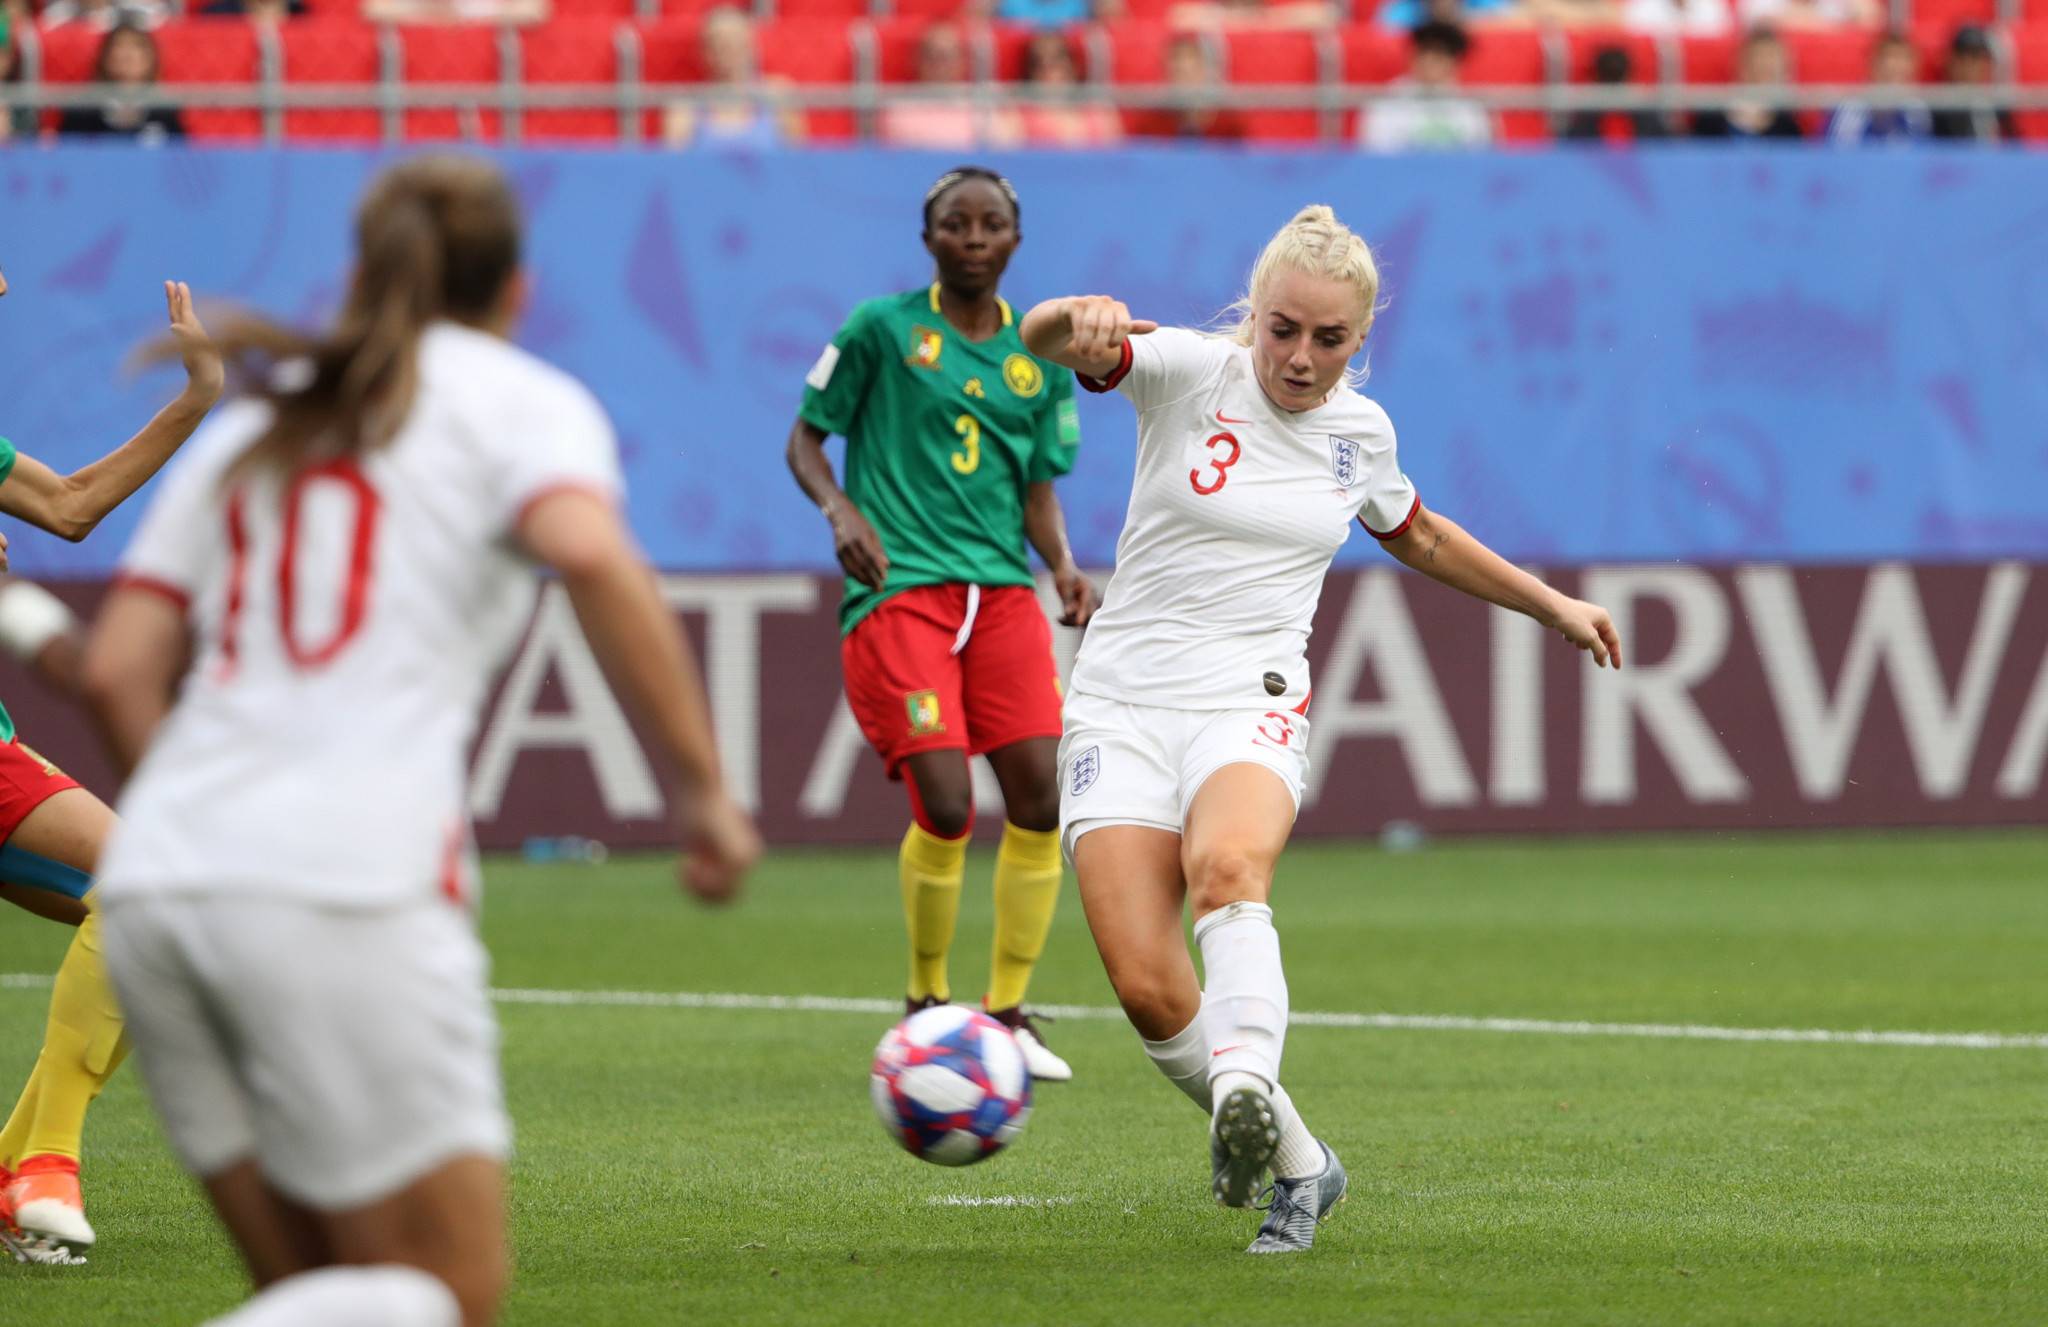 England sealed their quarter final place when Alex Greenwood swept home a corner for 3-0 ©Getty Images